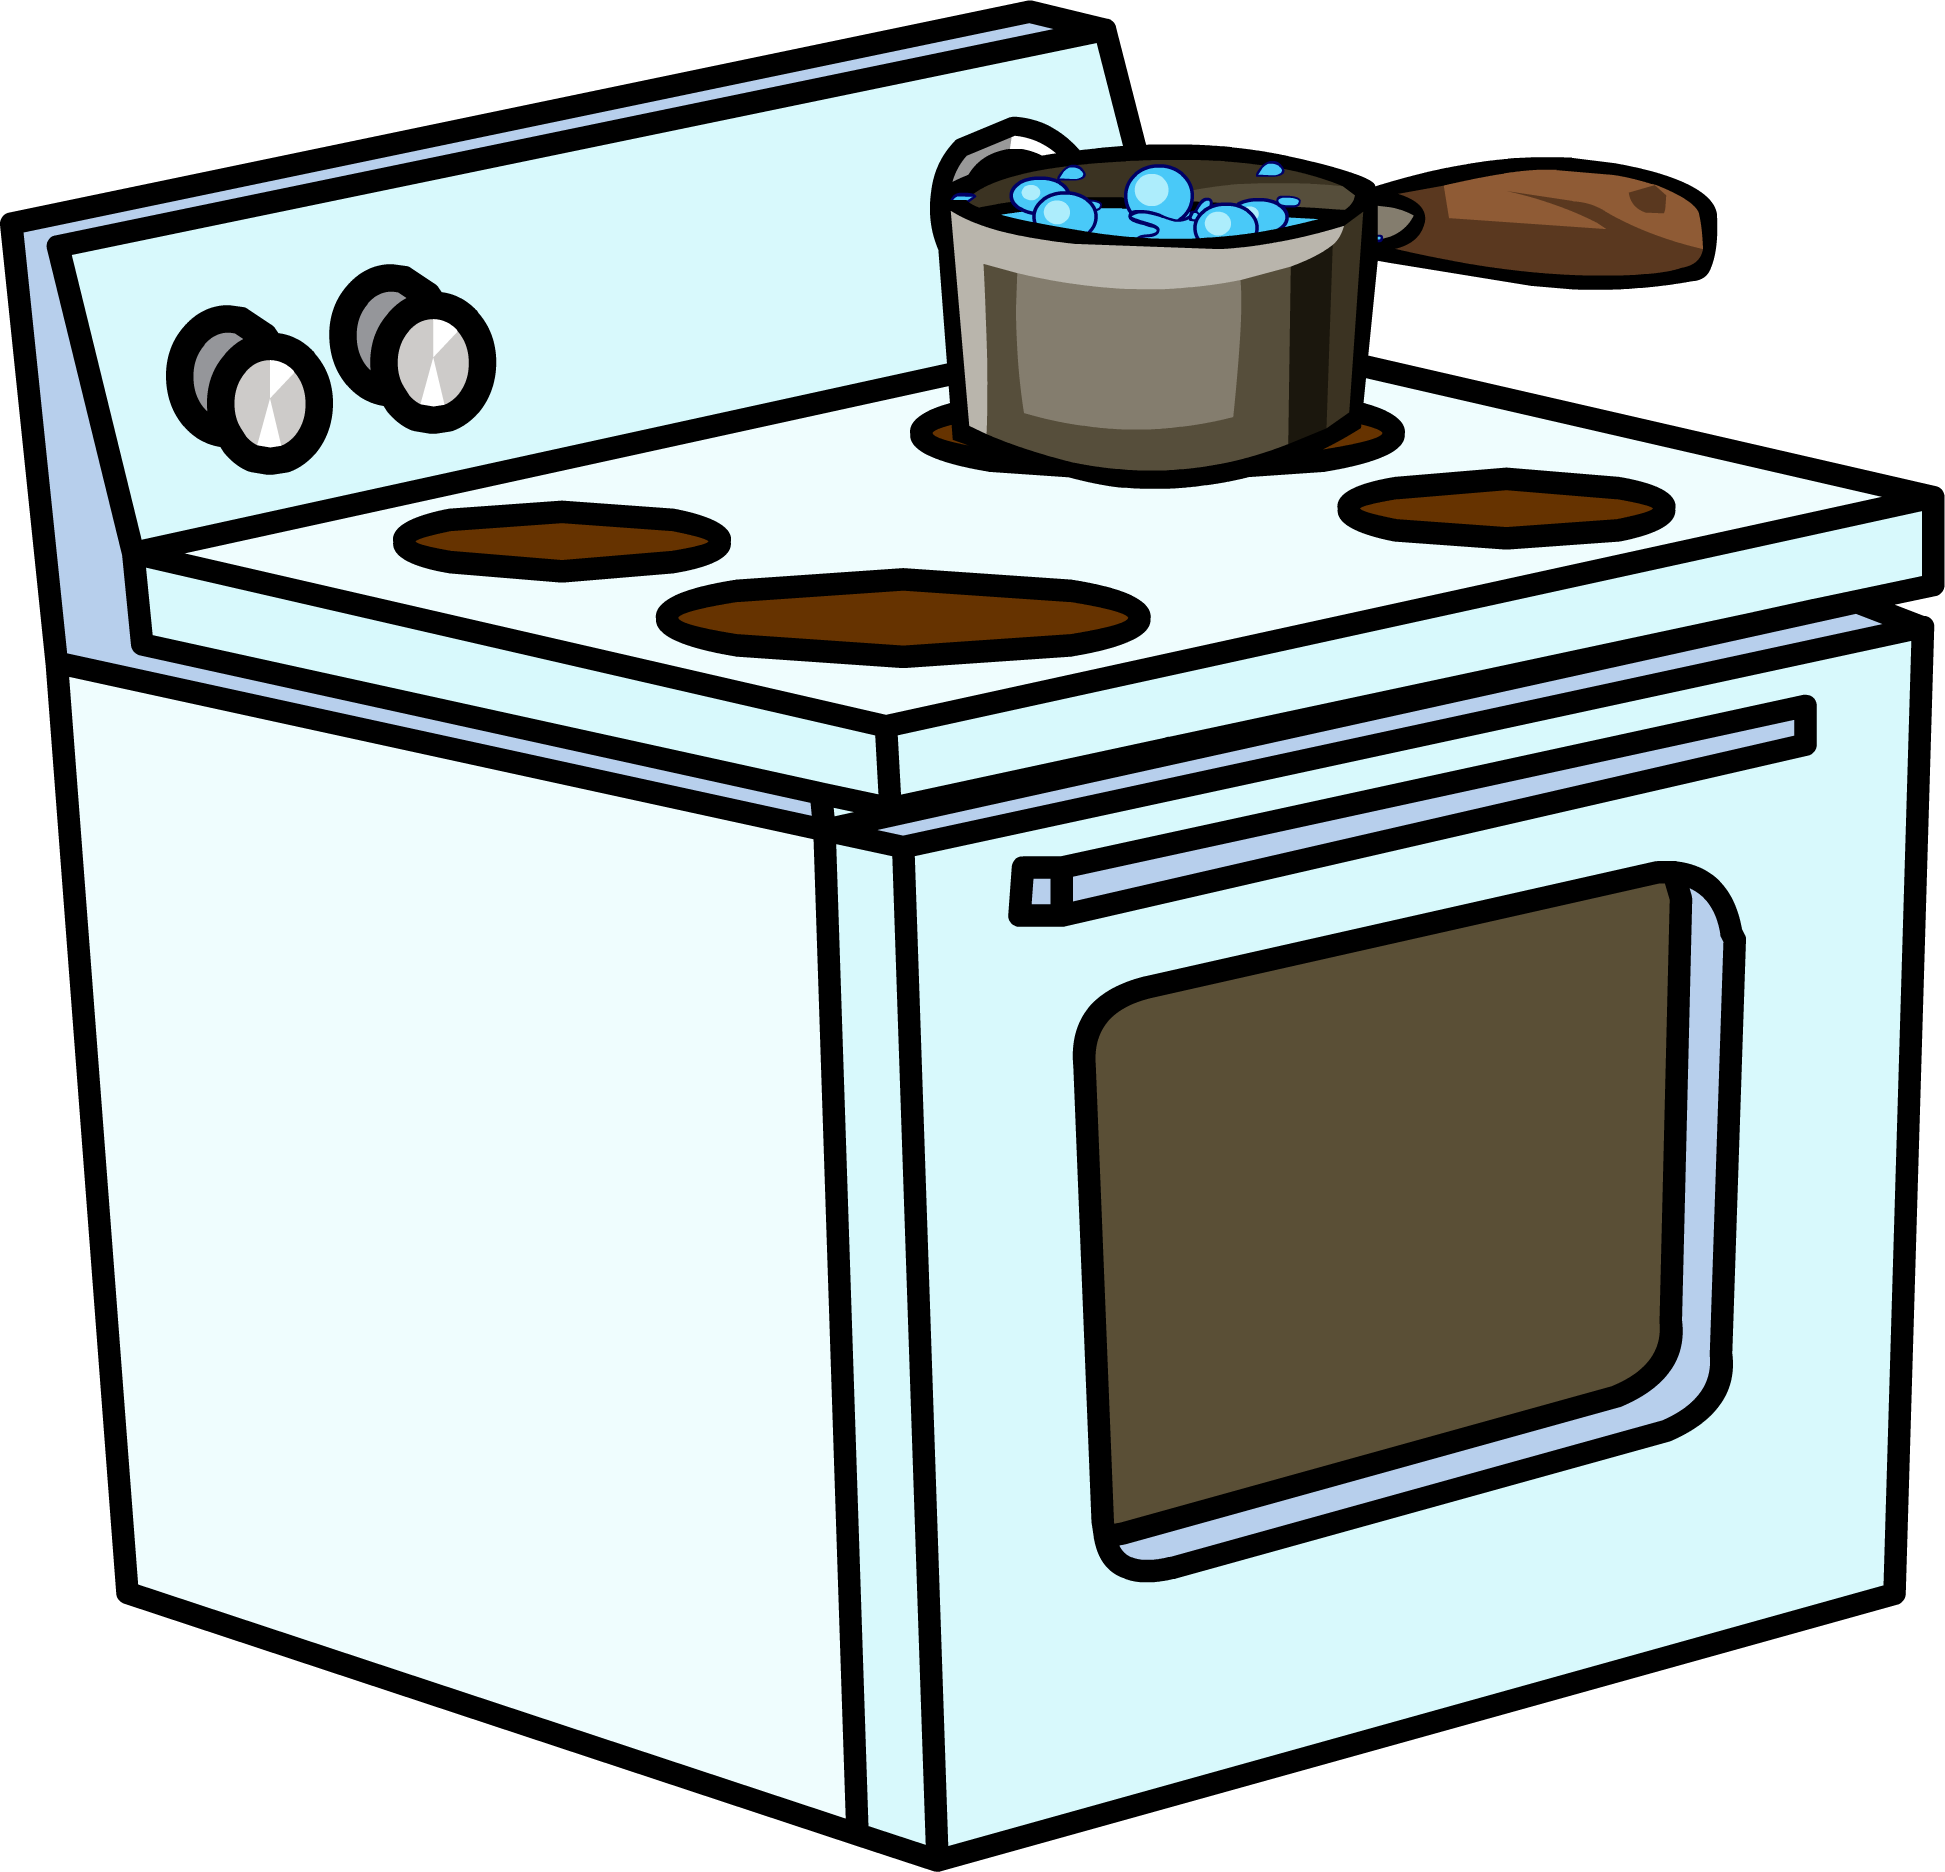 Clipart fire stove.  collection of high